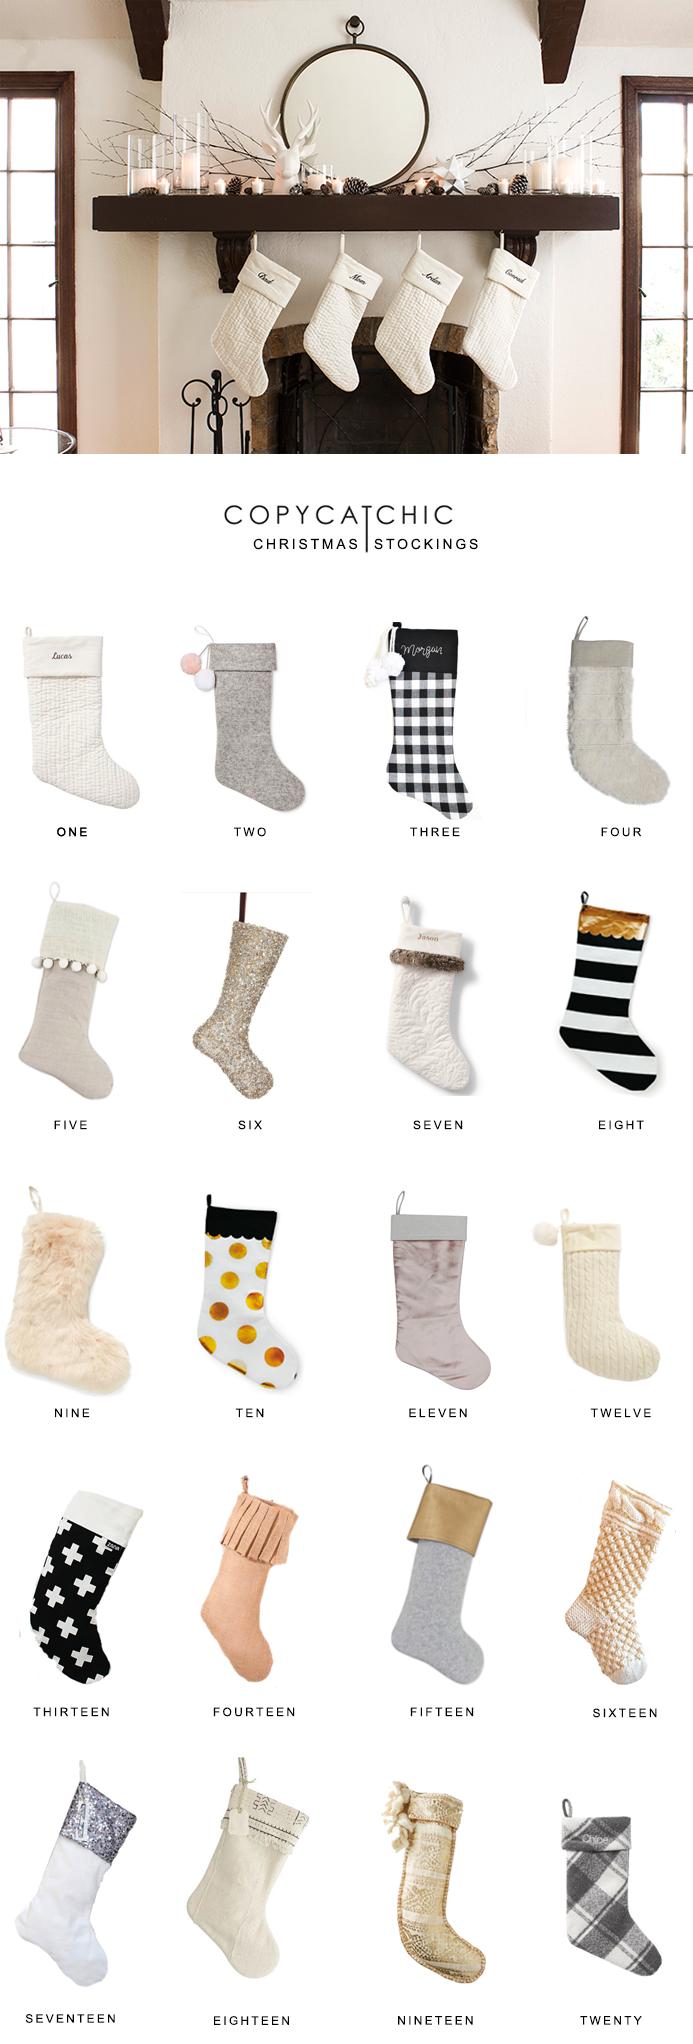 Home Trends favorite non-traditional hipster modern Christmas stockings this holiday season! Copy Cat Chic luxe living for less budget home decor & design